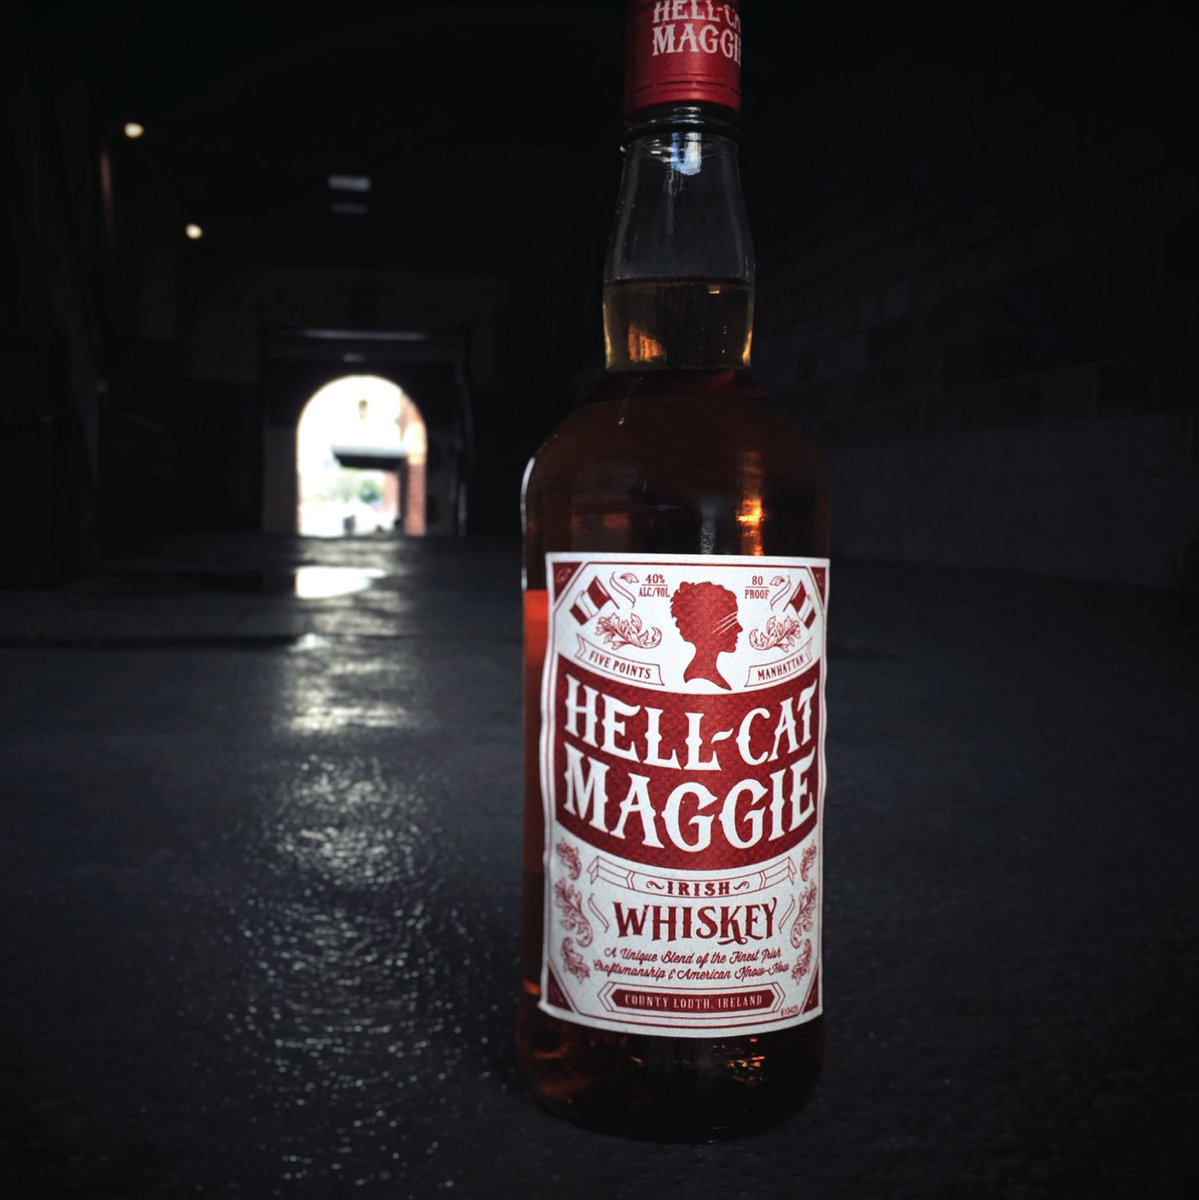 When you hide in the shadows, it's always a black Friday. #hellcatmaggie #irishwhiskey #blackfriday https://t.co/GCY5jfK1uN